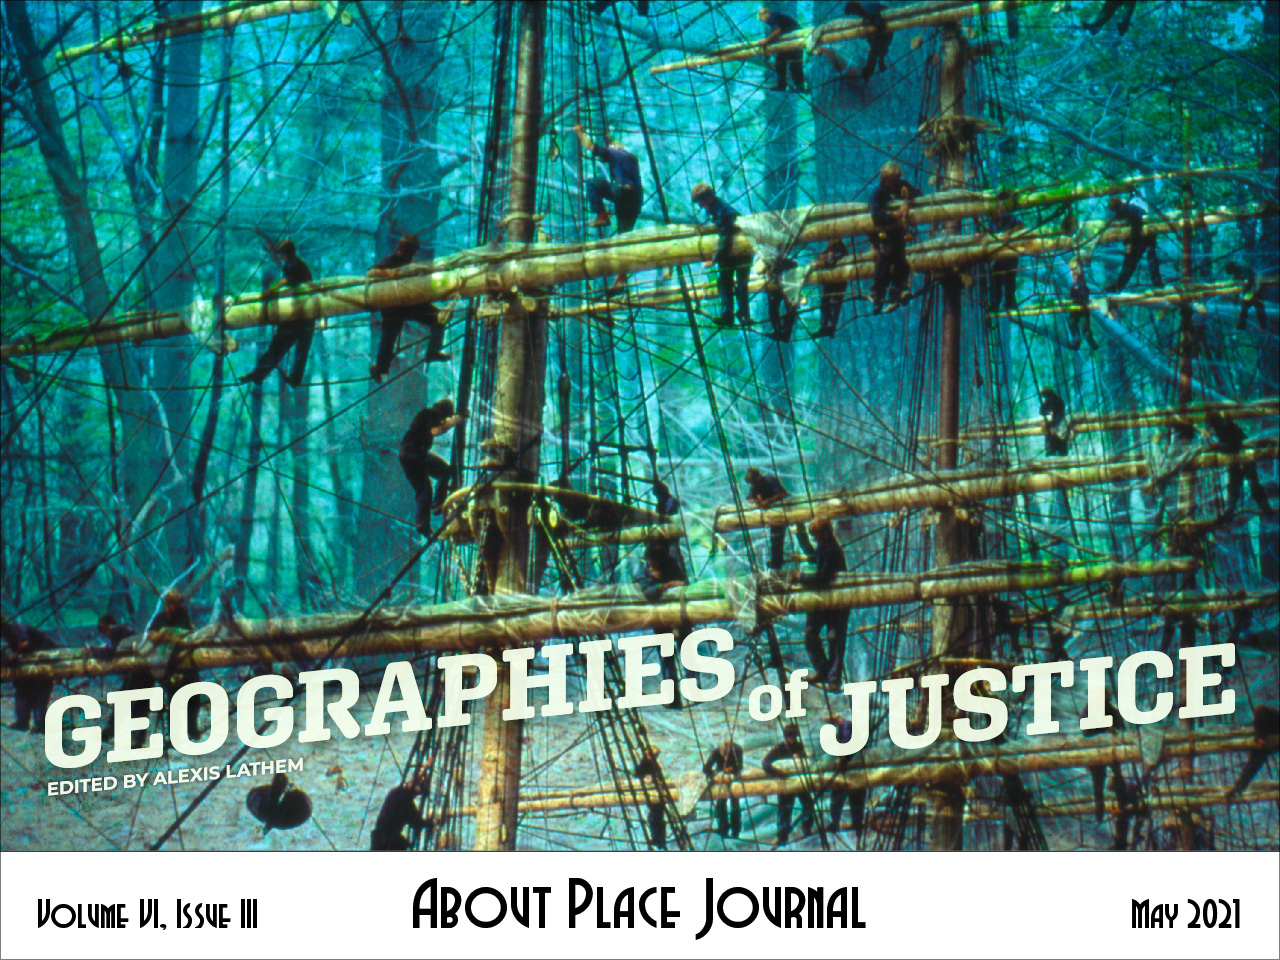 About Place Journal - Geographies of Justice